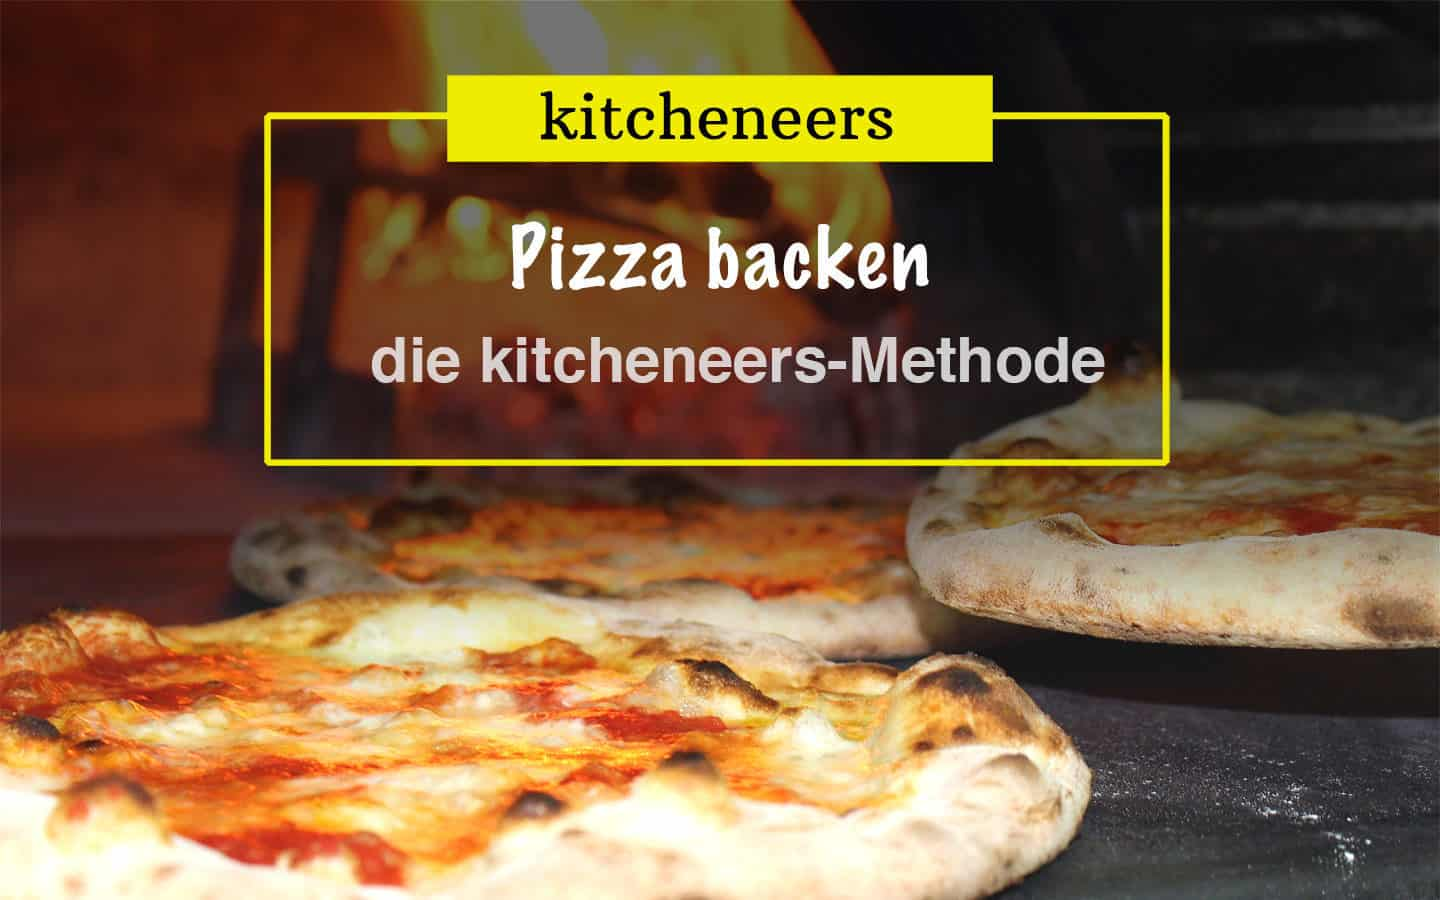 Pizza backen: die beste Methode für den Heimofen